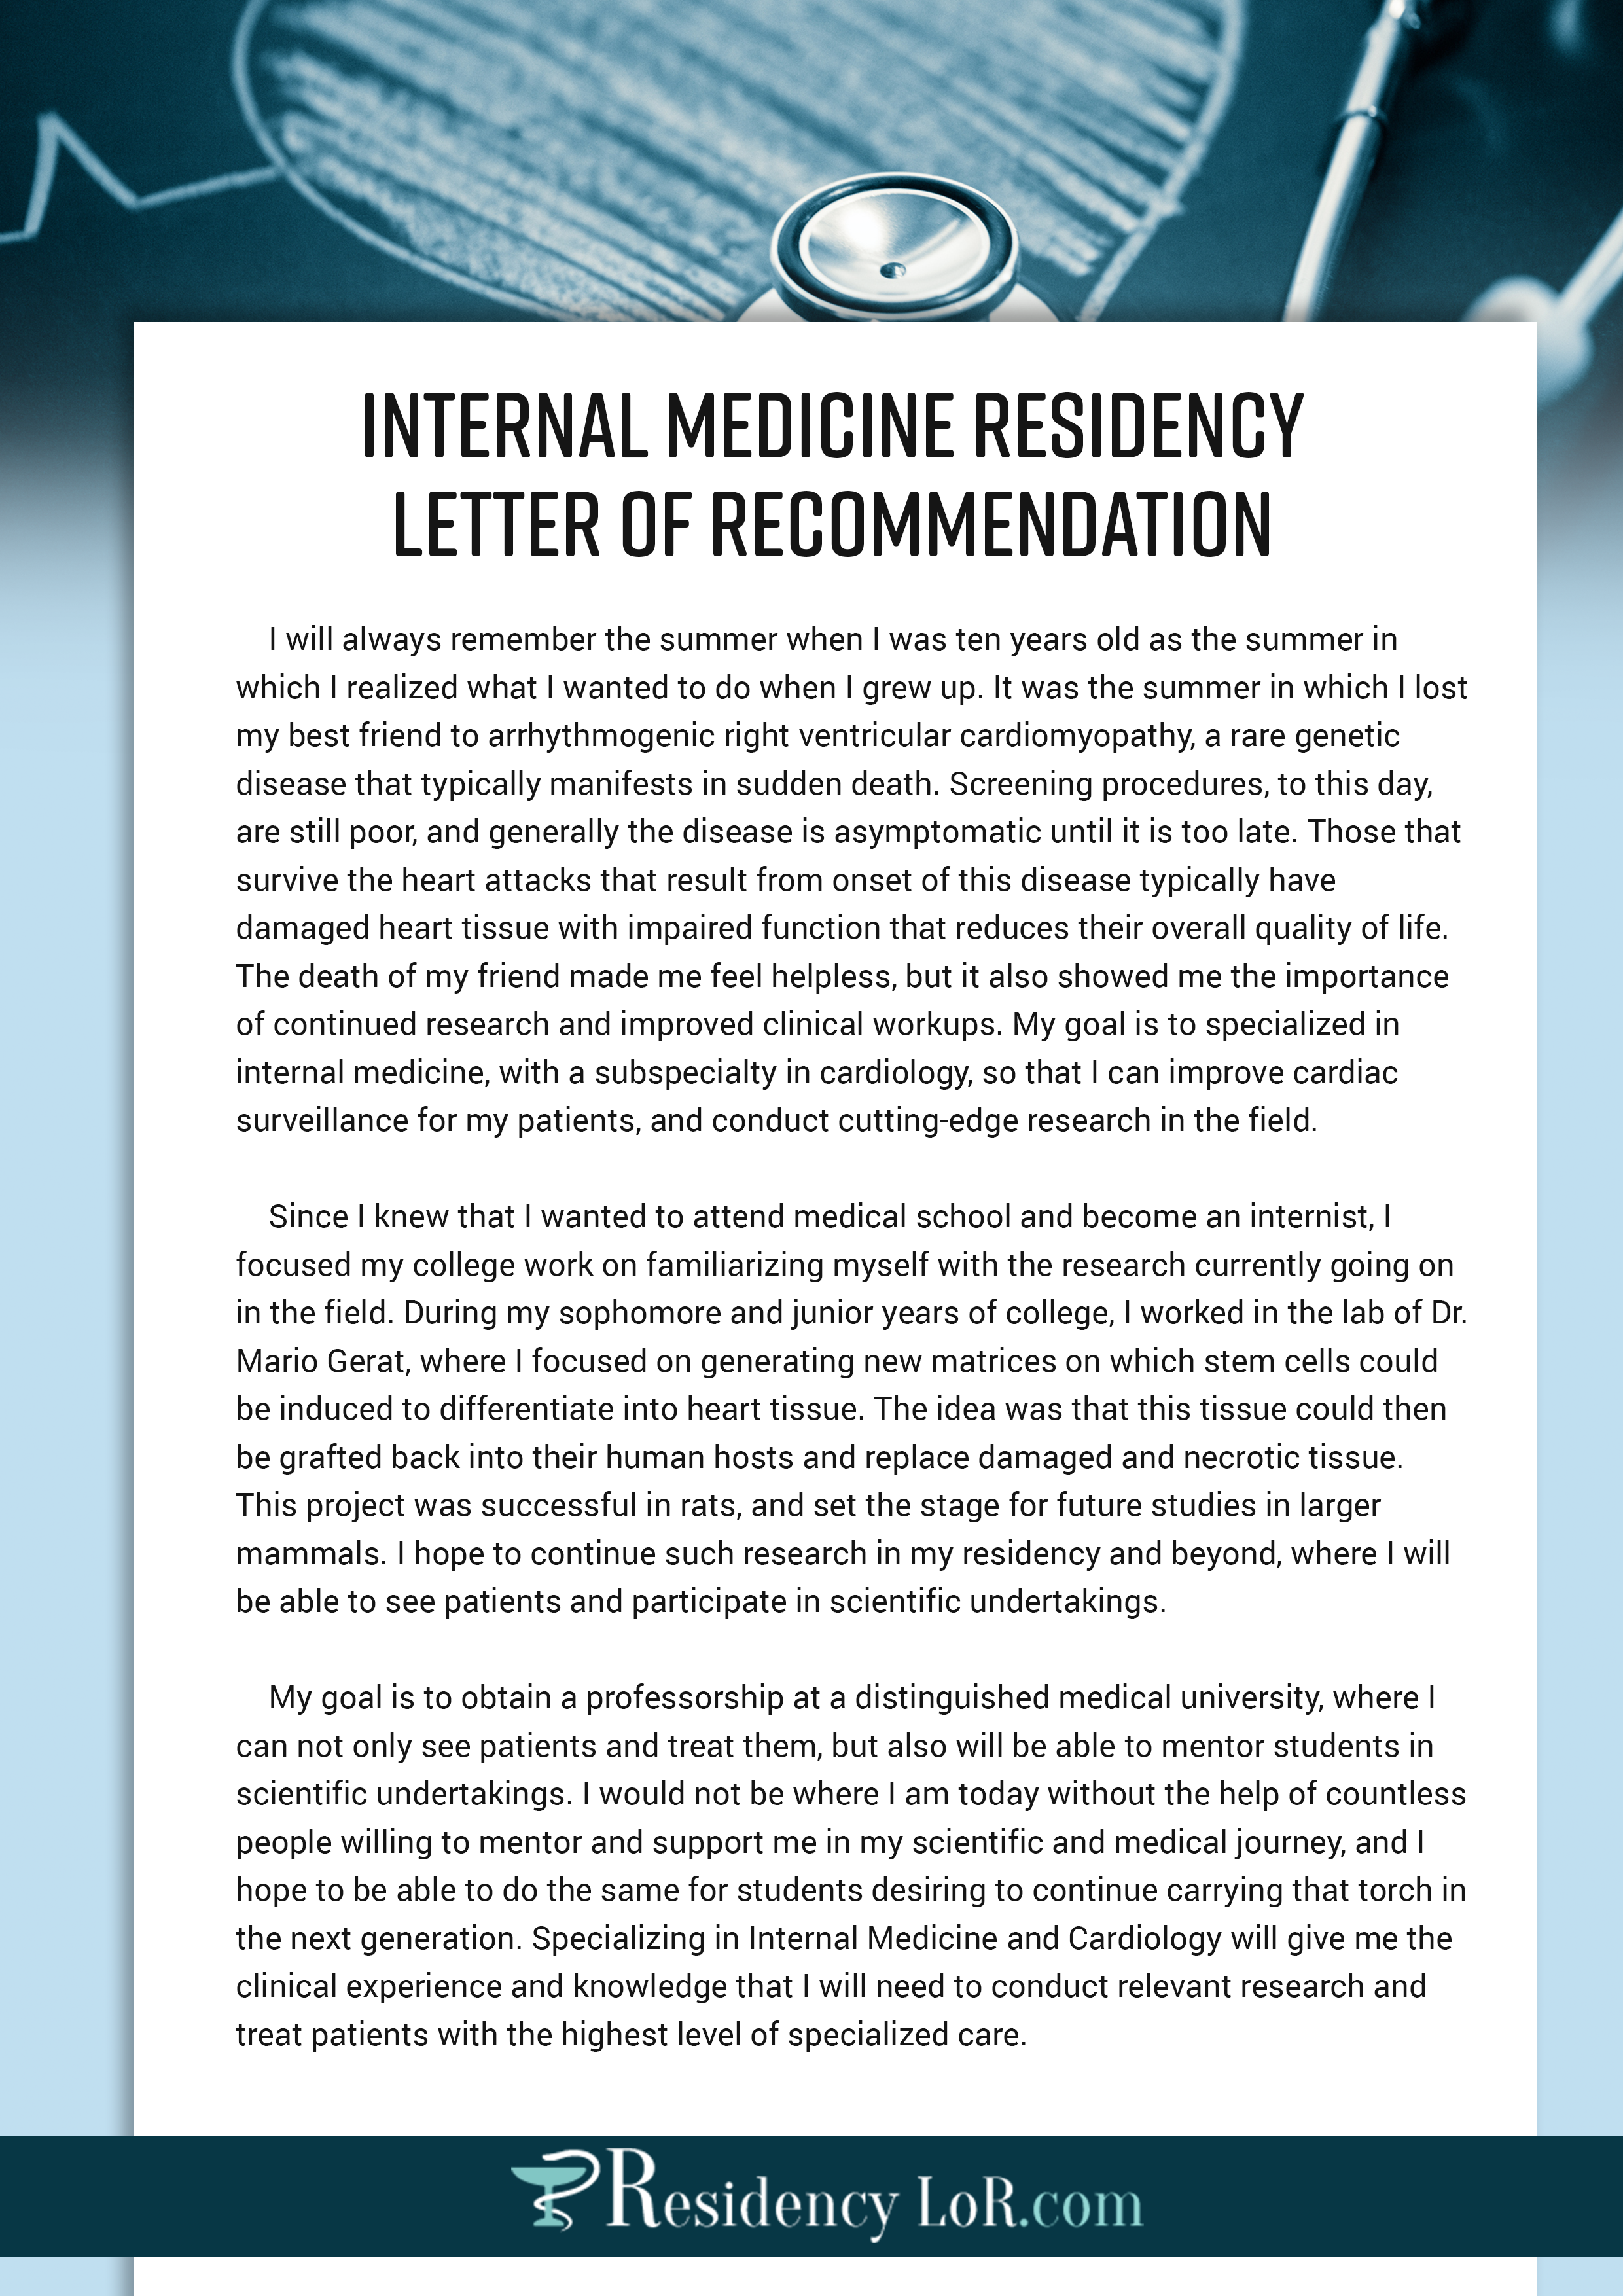 sample letter of recommendation for internal medicine